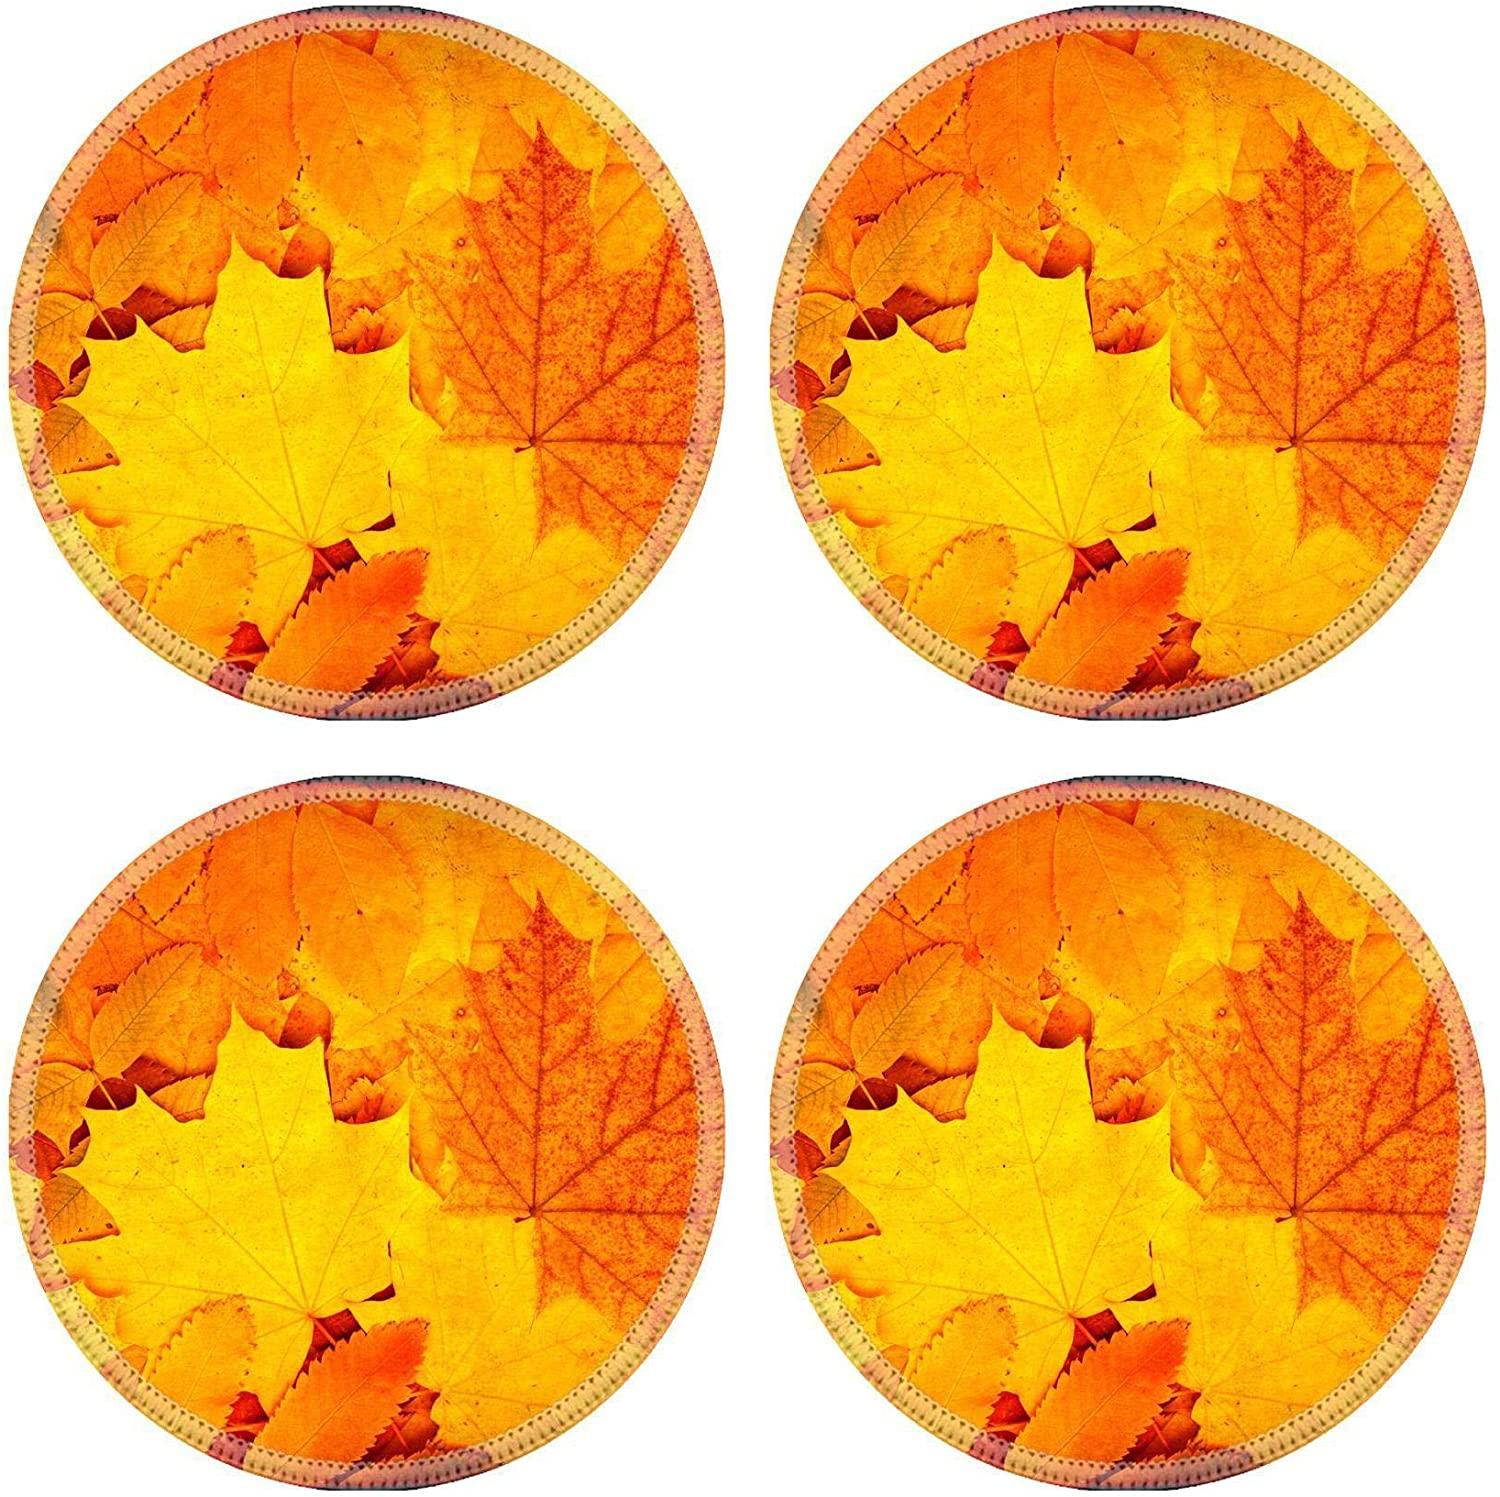 MSD Natural Round Drink Coaster set of 4 Image ID: 31675492 Grunge background with autumn leaves